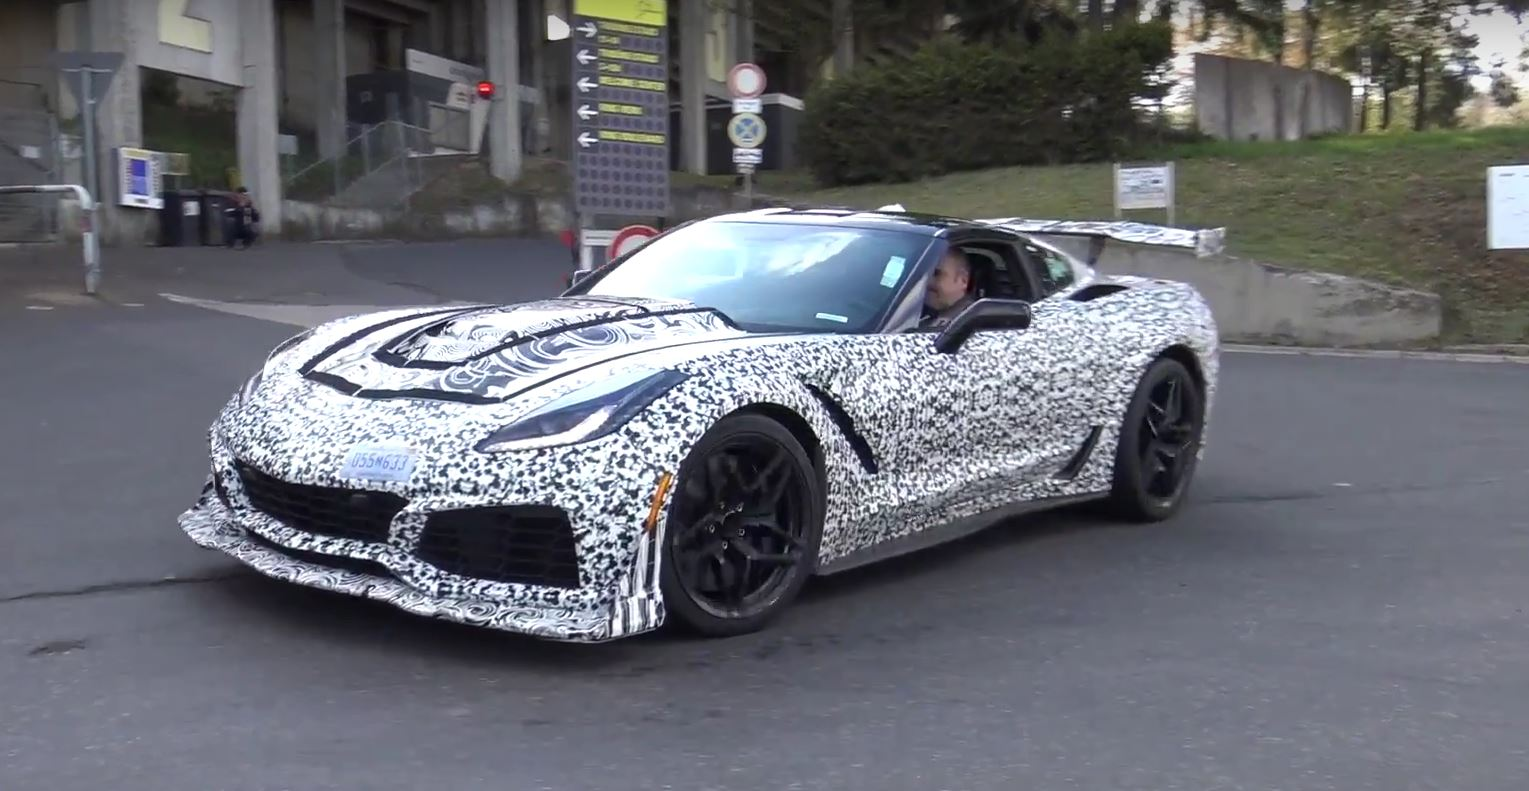 Corvette Zo7 >> The 2018 Corvette ZR1 Looks Committed On The Nurburgring In New Spy Video - autoevolution